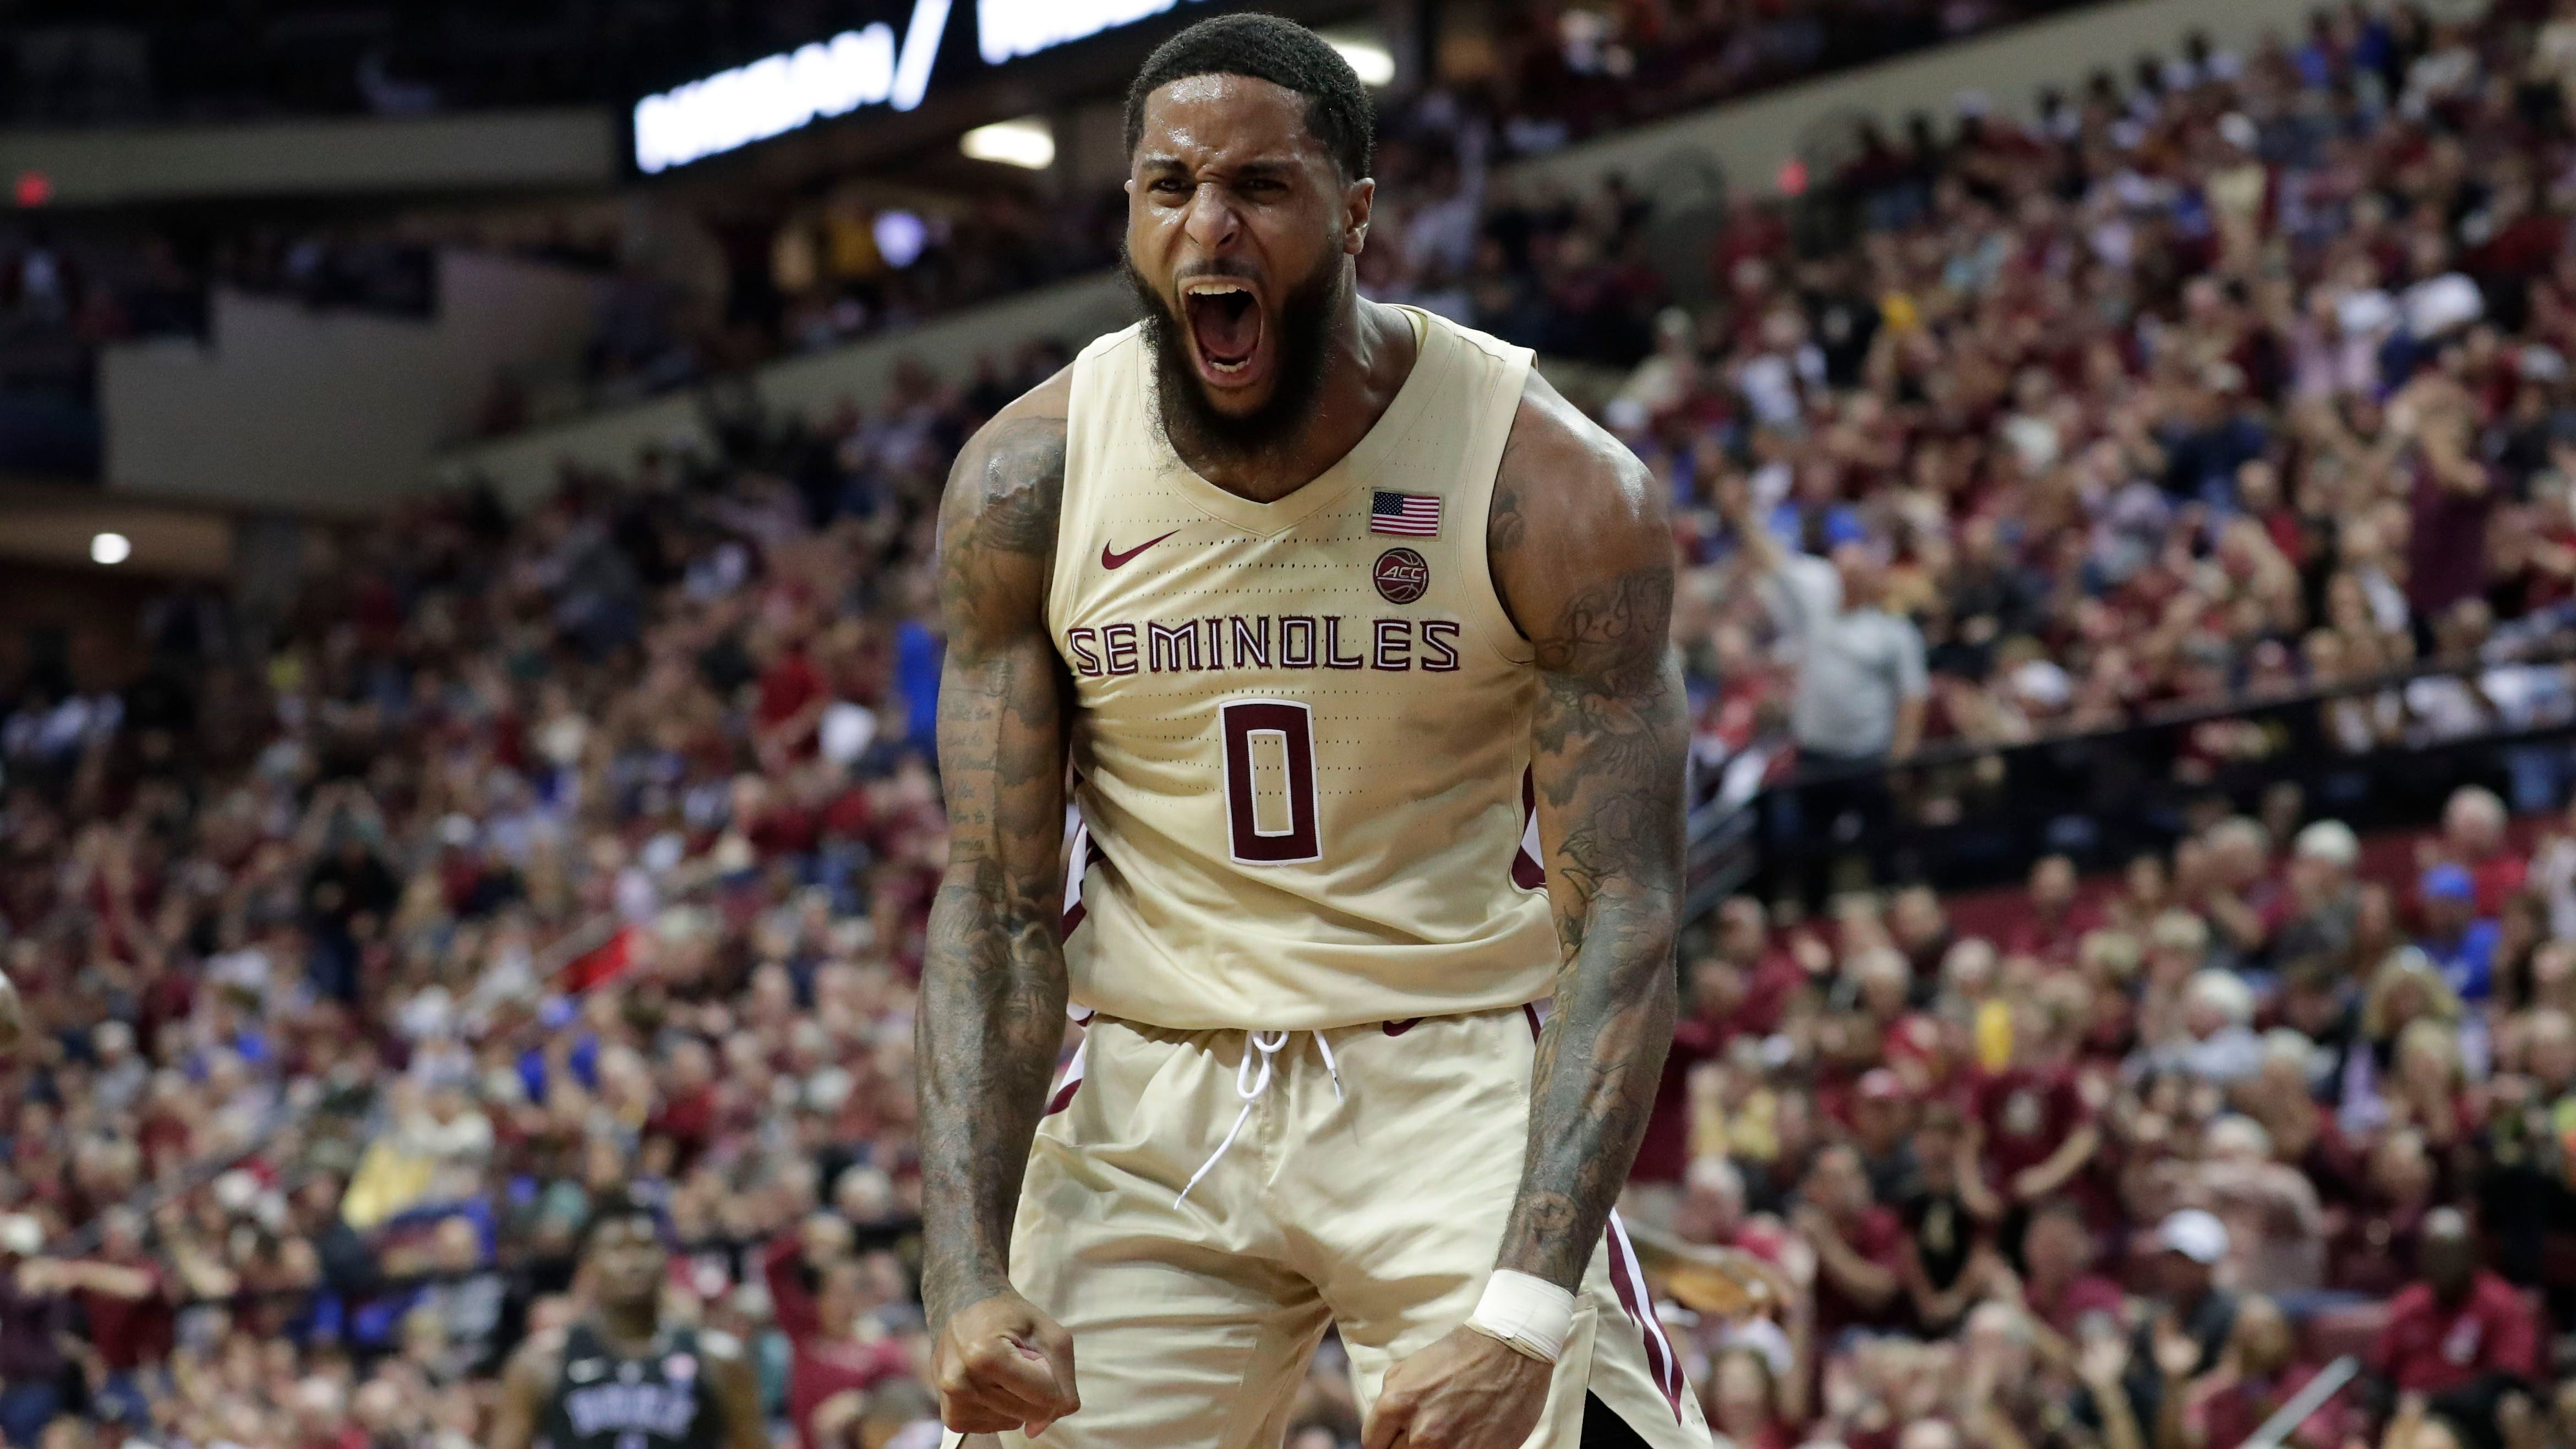 Ranked 13 in the ACC, the Florida State Seminoles host the number 1 team, the Duke Blue Devils, at the Tucker Civic Center, Saturday, Jan. 12, 2019. Florida State Seminoles forward Phil Cofer (0) celebrates a dunk.   Alicia Devine/Democrat Ranked 13 in the ACC, the Florida State Seminoles host the number 1 team, the Duke Blue Devils, at the Tucker Civic Center, Saturday, Jan. 12, 2019. Florida State Seminoles forward Phil Cofer (0) celebrates a dunk.